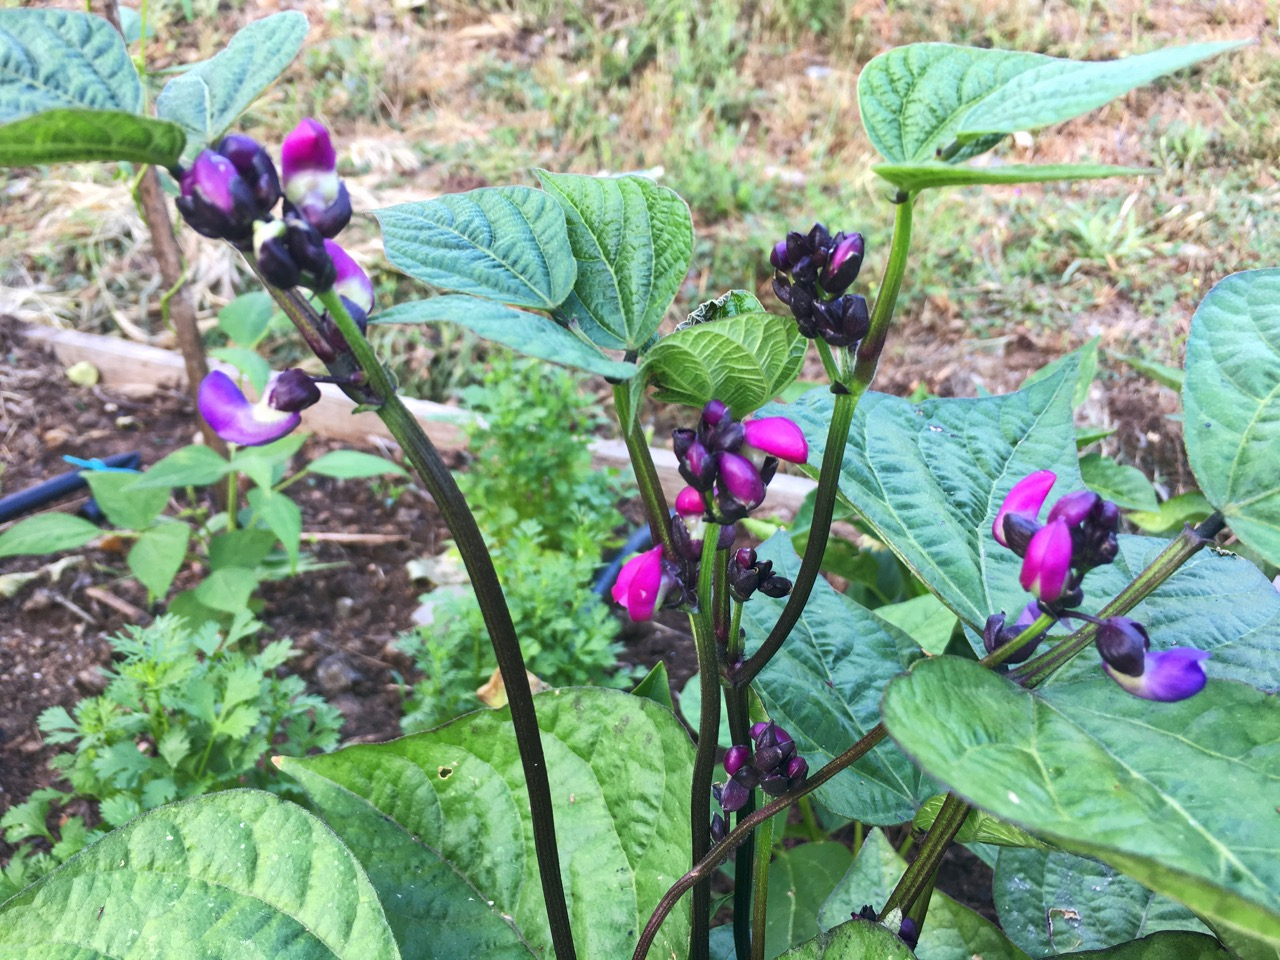 However my heart has been stolen by the flowers of these dwarf purple beans. When they develop the pods will be dark purple. I can't wait.